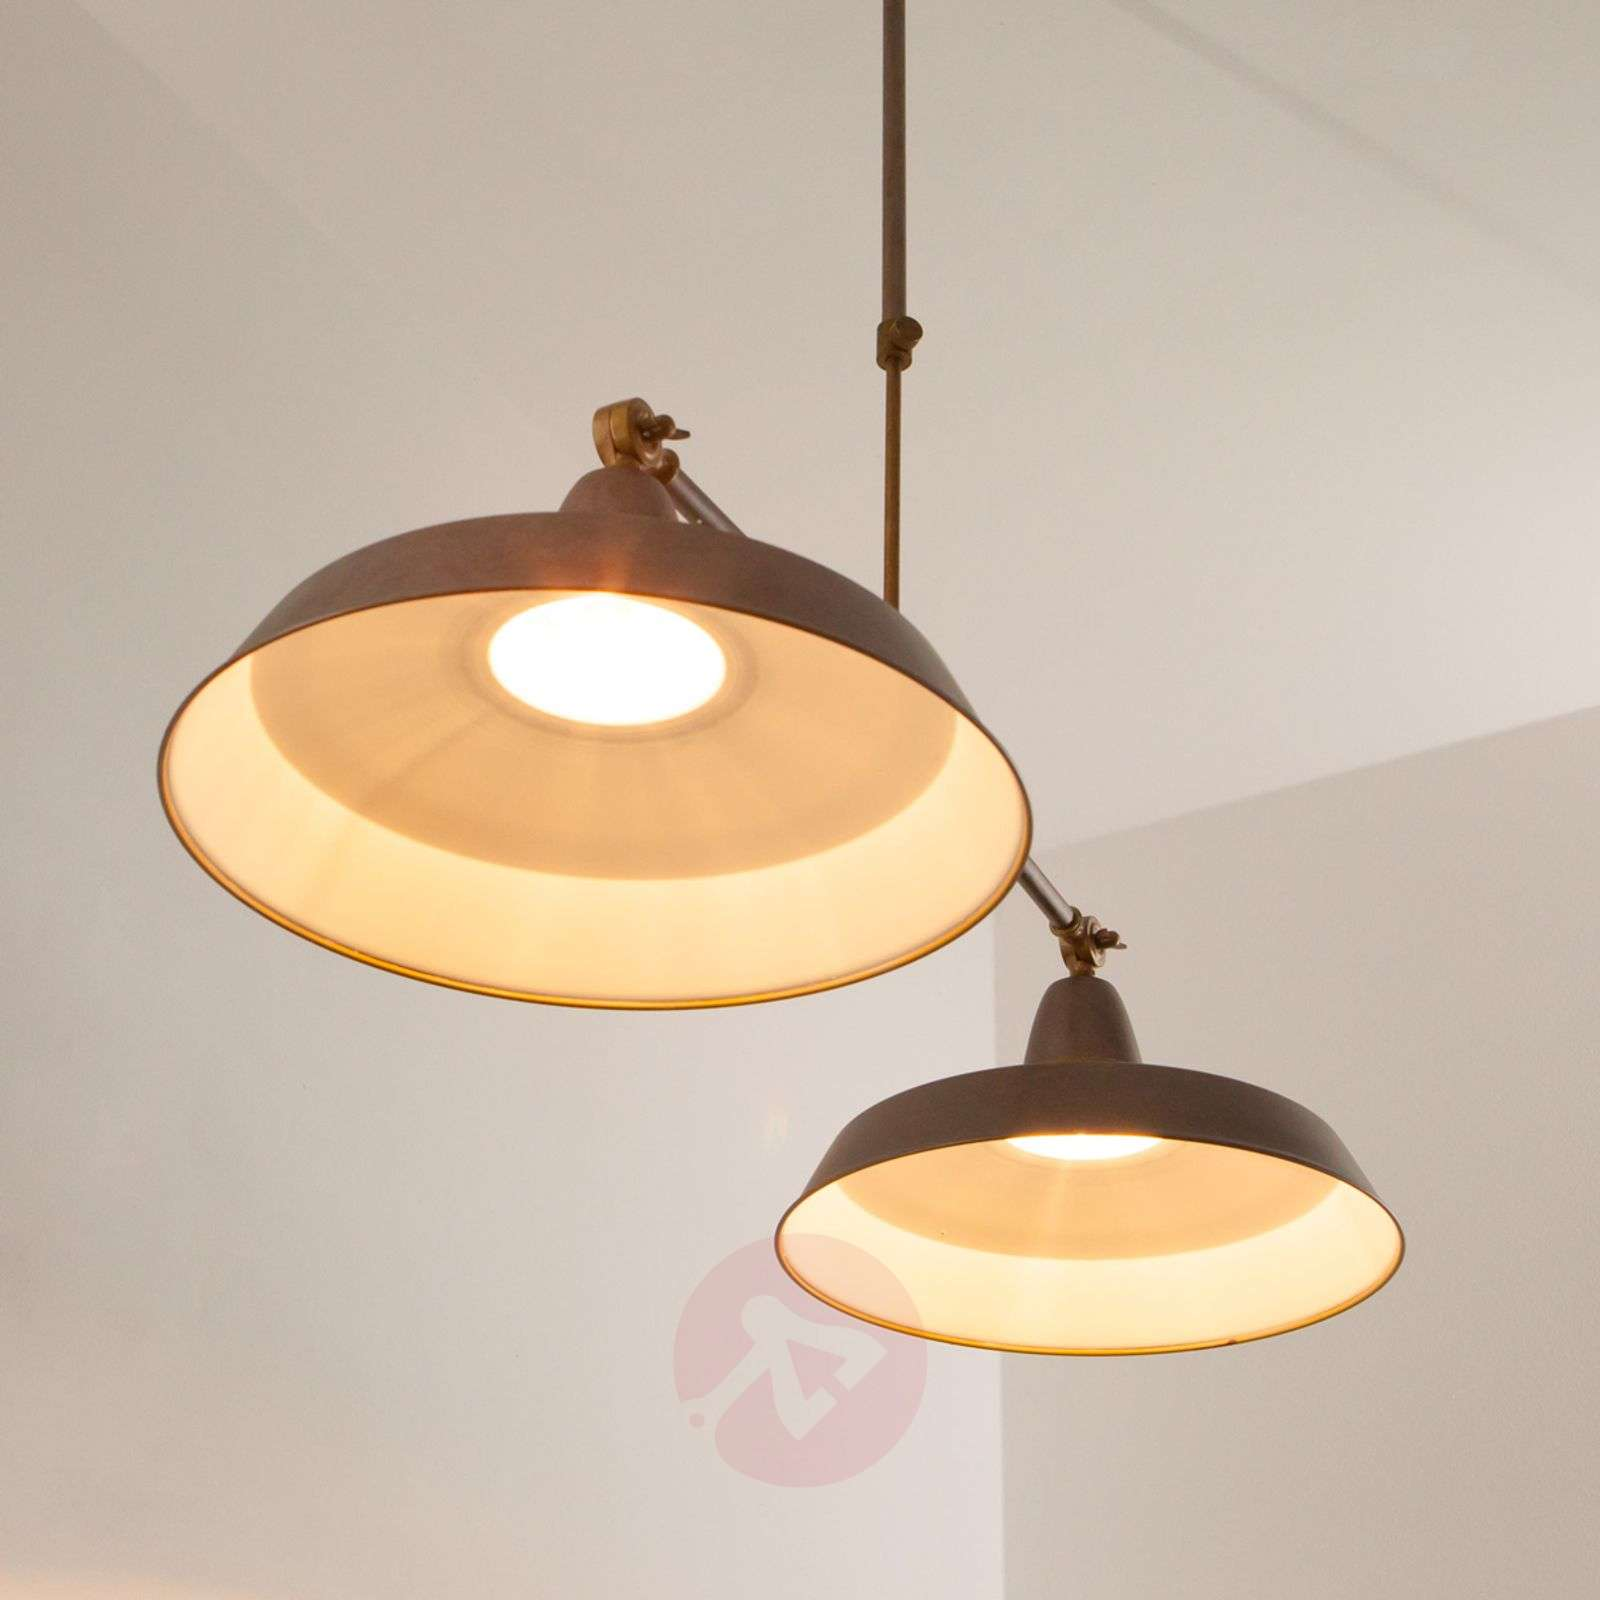 Retro hanglamp Vintage in roestbruin, 2-lichts-6026479-03